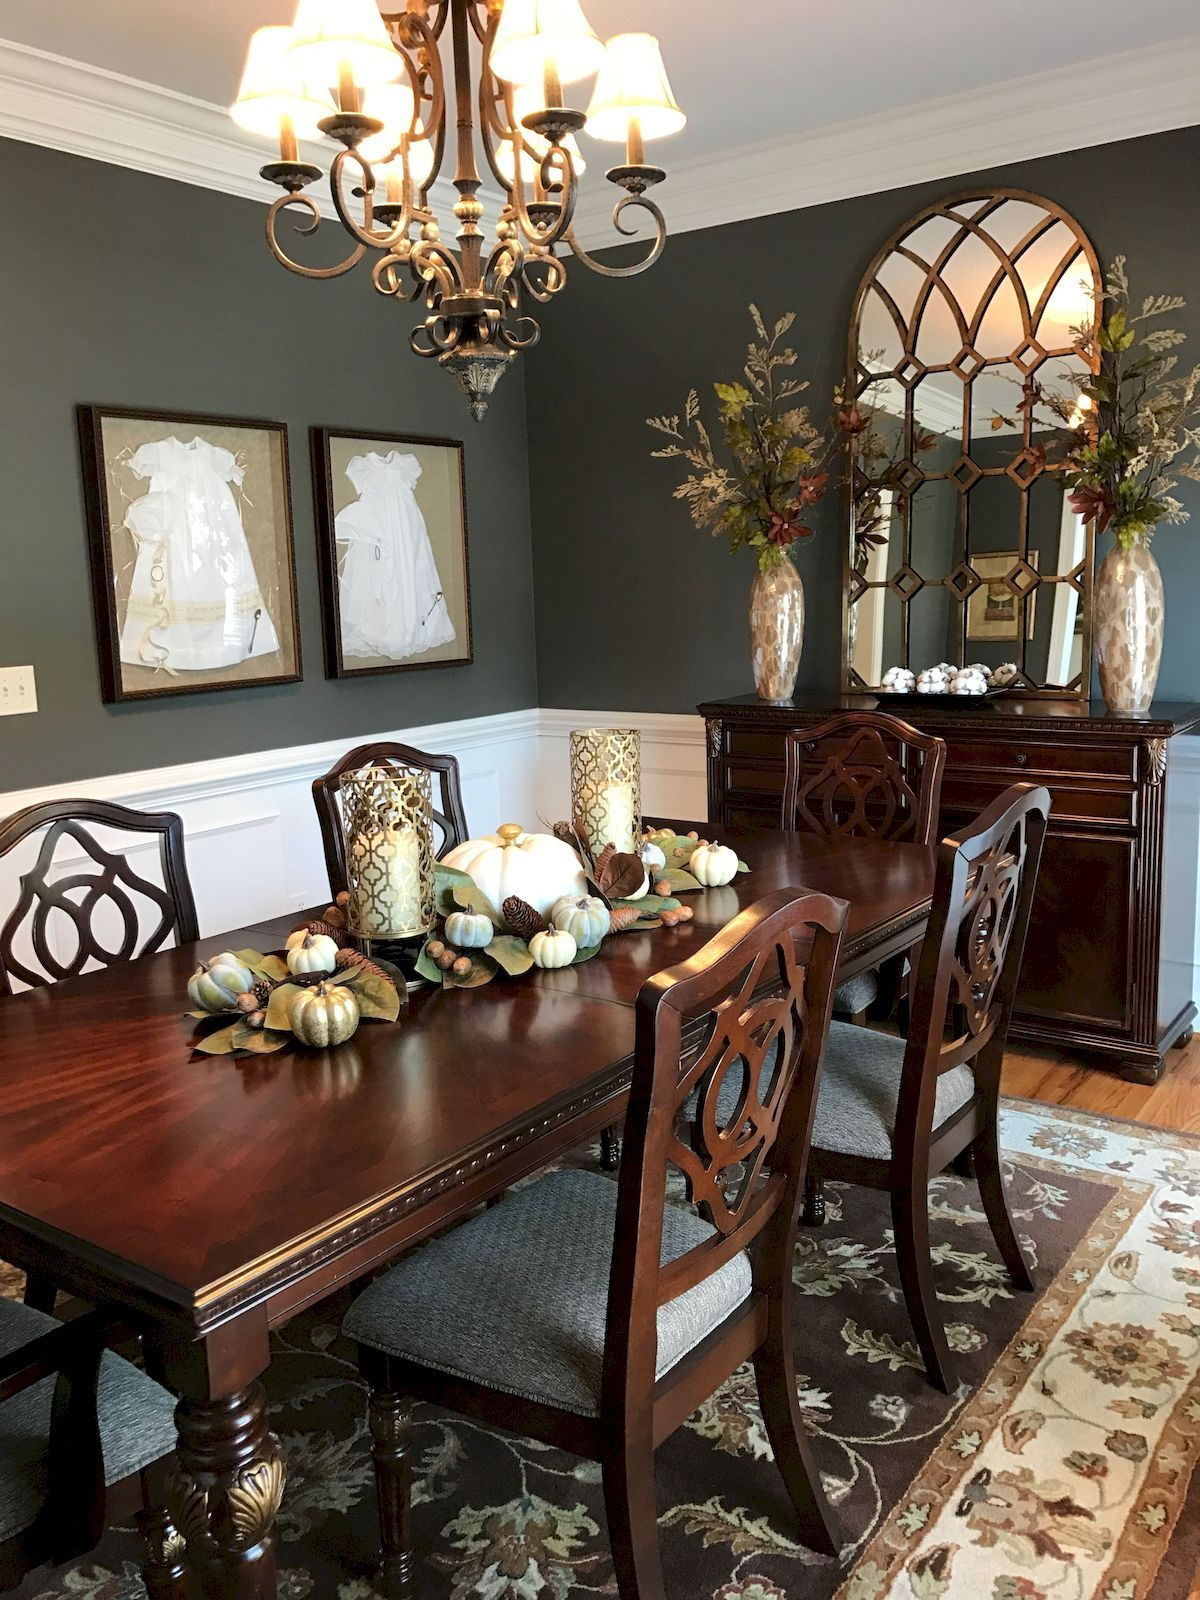 Traditional Farmhouse Or Vintage No Matter The Dining Room Style Insplosion Com Has A Dining Room Paint Dining Room Decor Traditional Dining Room Table Decor